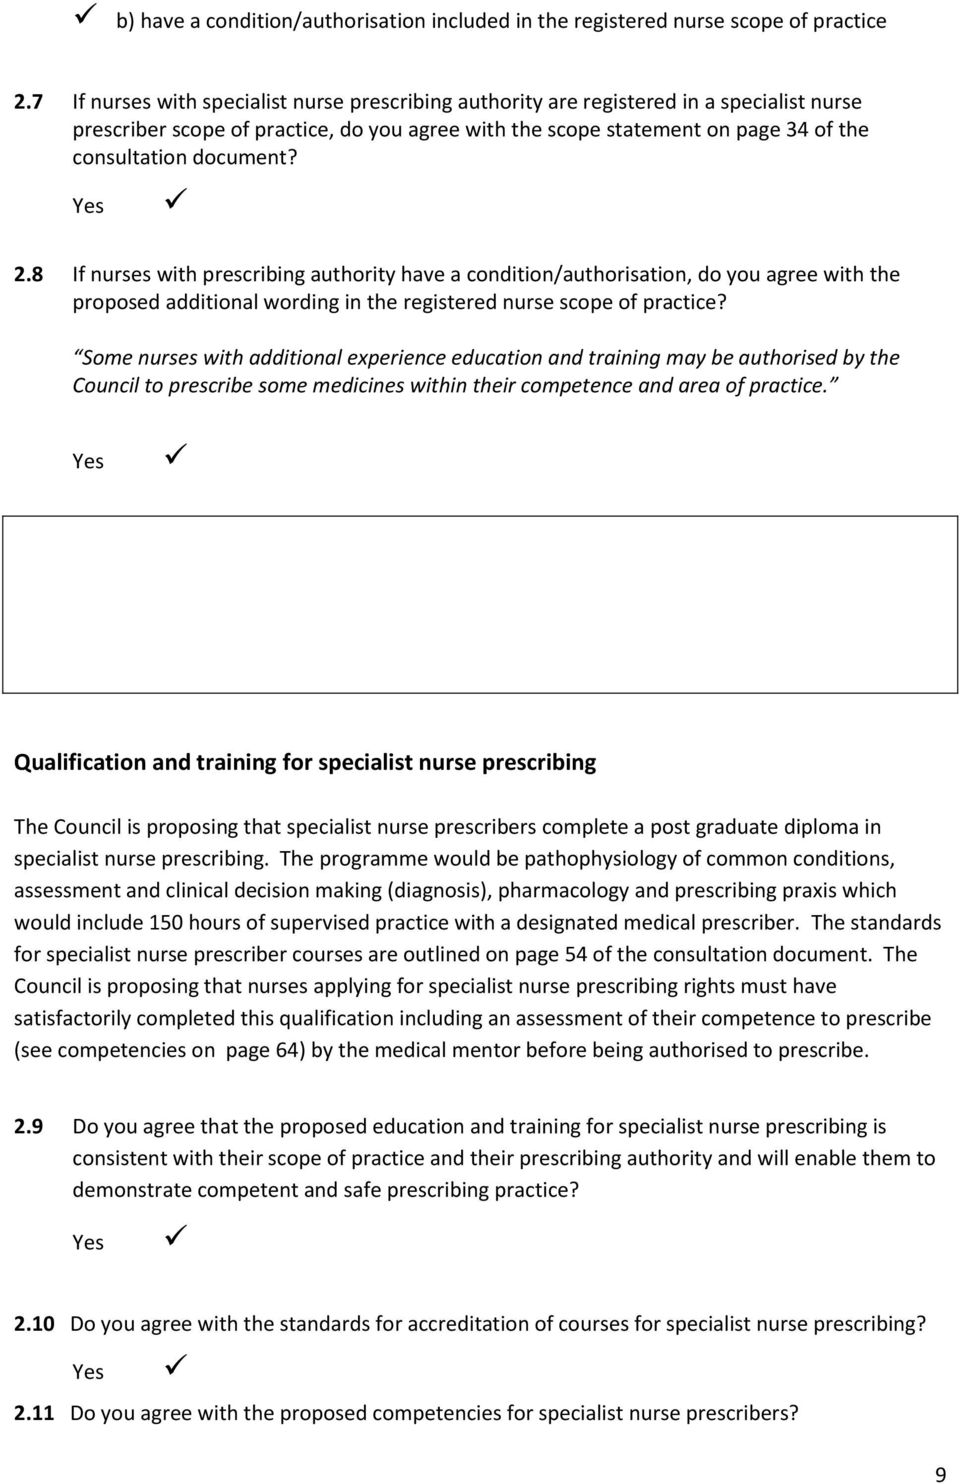 document? 2.8 If nurses with prescribing authority have a condition/authorisation, do you agree with the proposed additional wording in the registered nurse scope of practice?